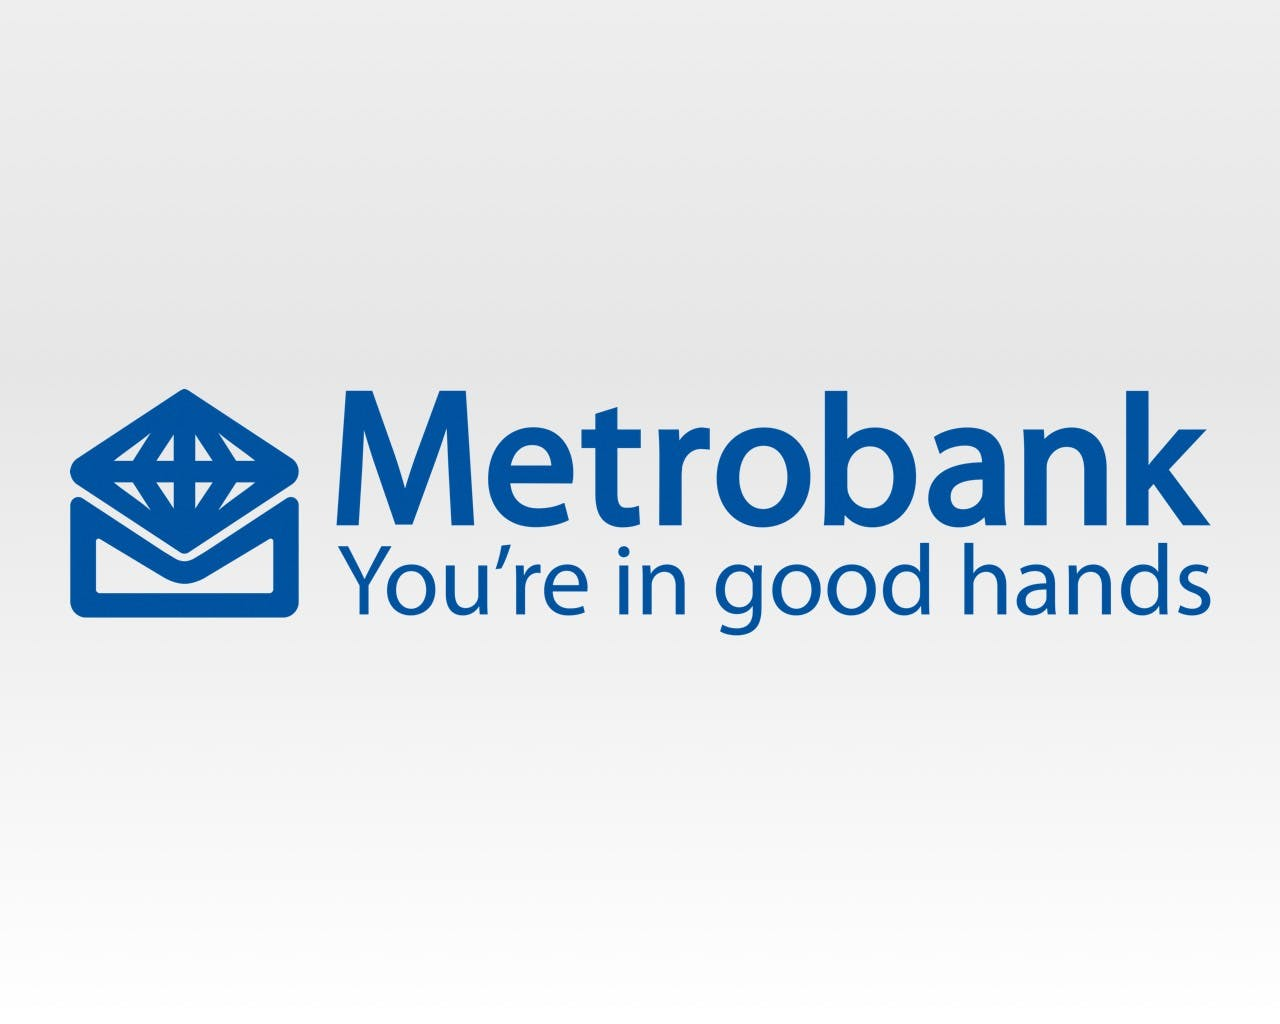 Metrobank Net Income Up 27.1% To P7.8 Billion In 1Q2021